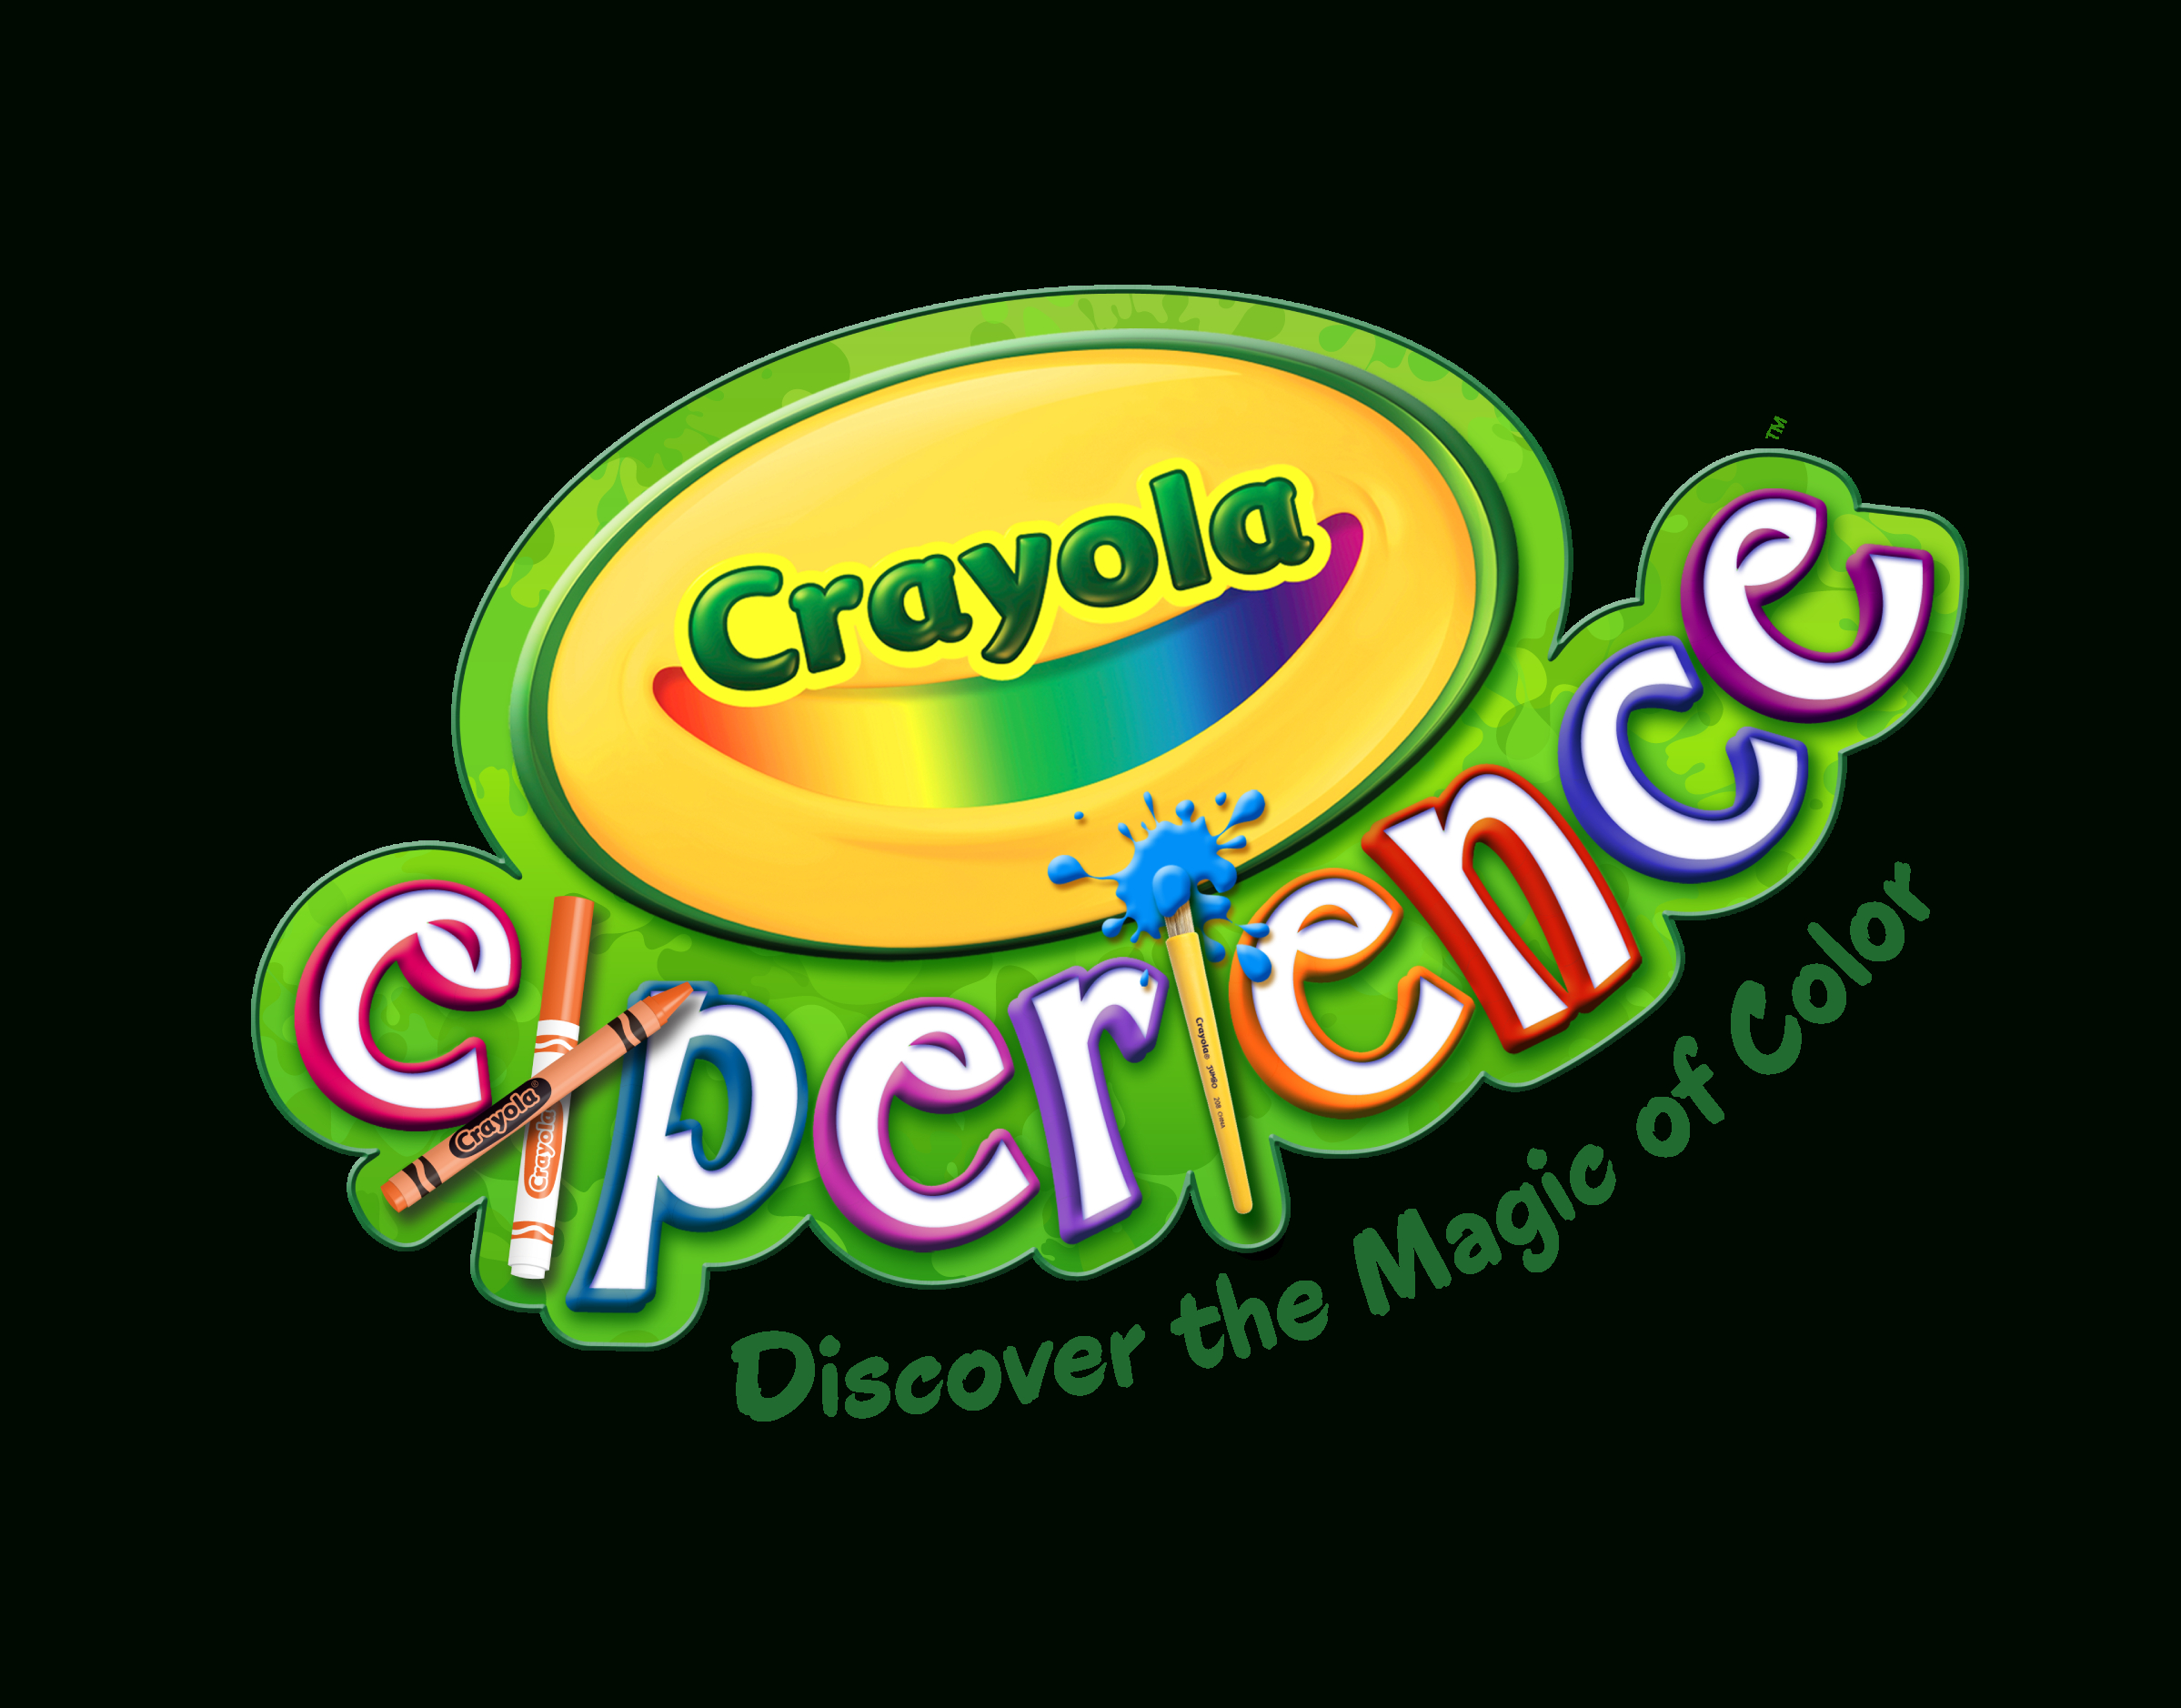 Exclusive Discount: Save $4 On Admission To The Crayola Experience - Free Printable Crayola Coupons